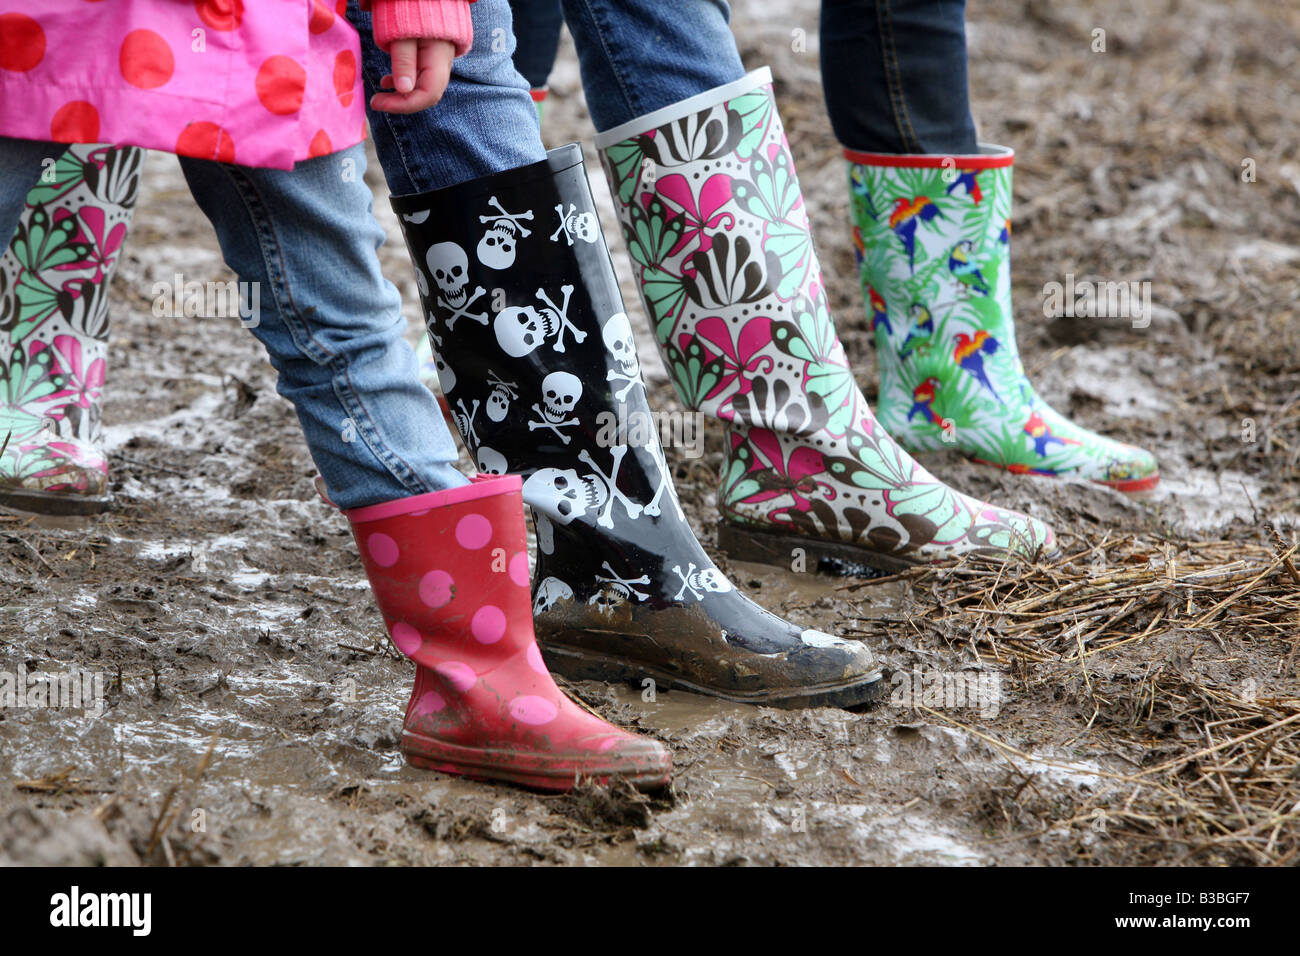 Colourful wellington boots in the mud